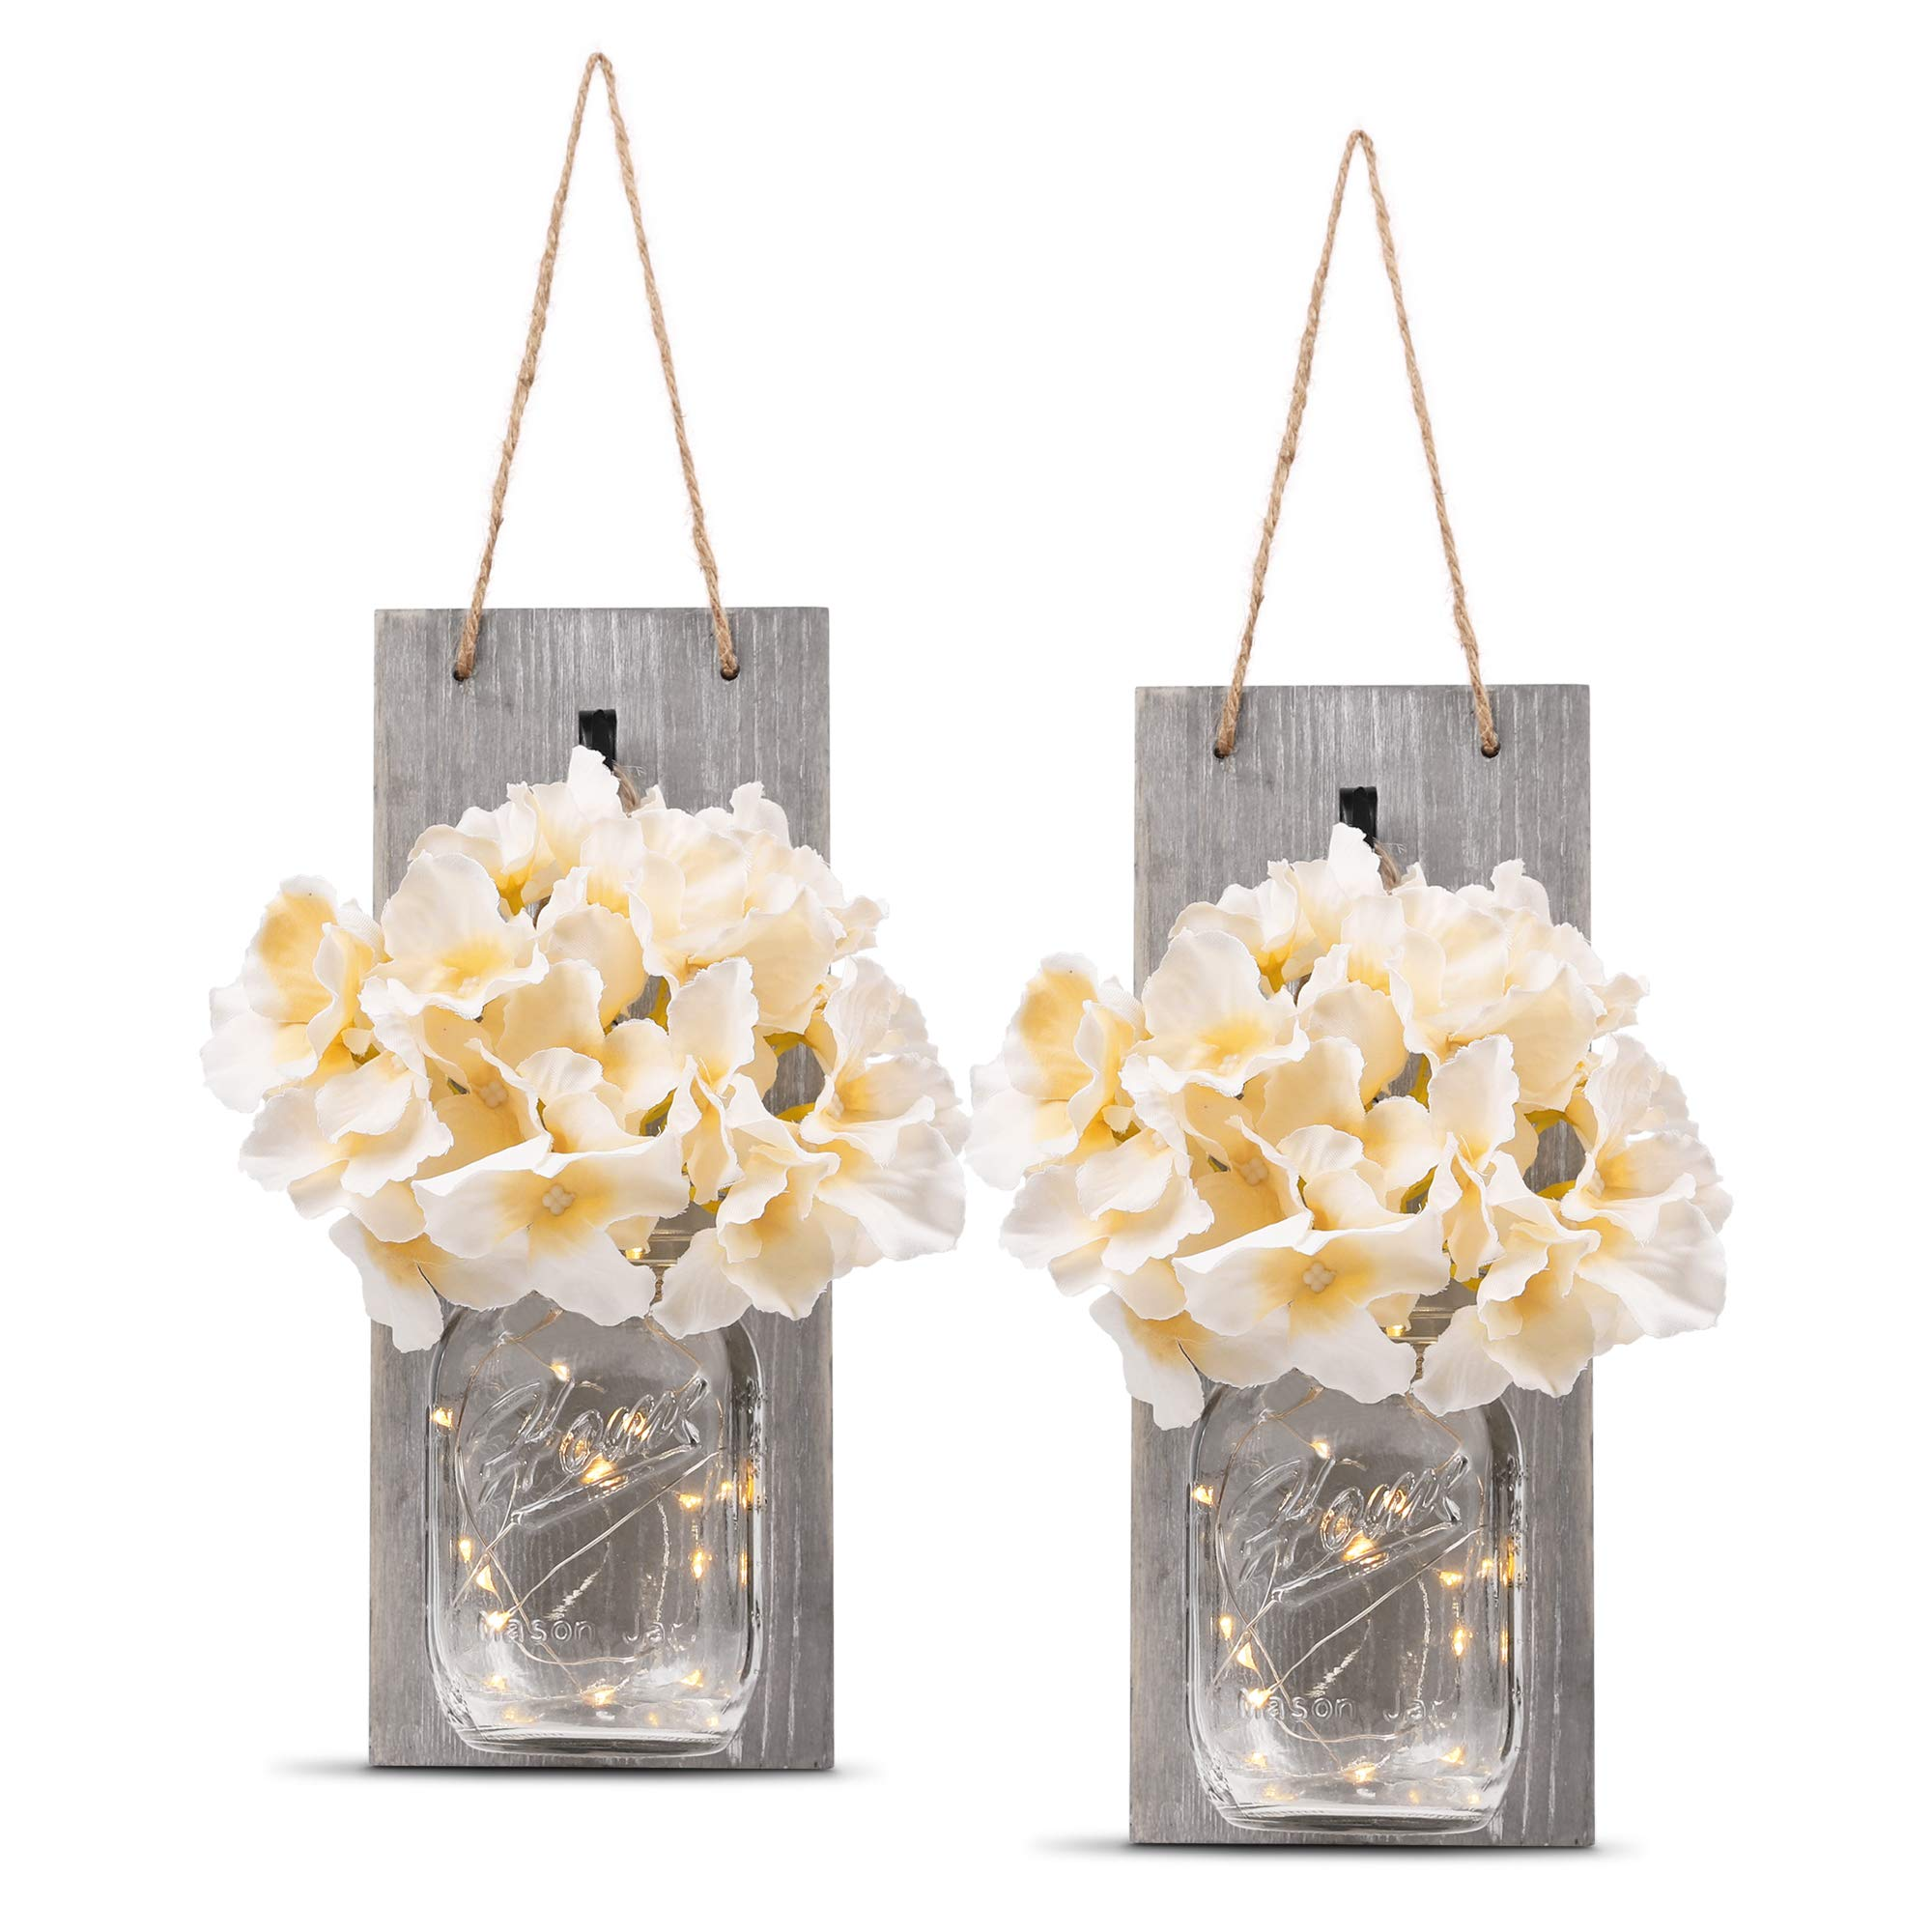 HOMKO Decorative Mason Jar Wall Decor - Rustic Wall Sconces with 6-Hour Timer LED Fairy Lights and Flowers - Farmhouse Home Decor (Set of 2) by HOMKO